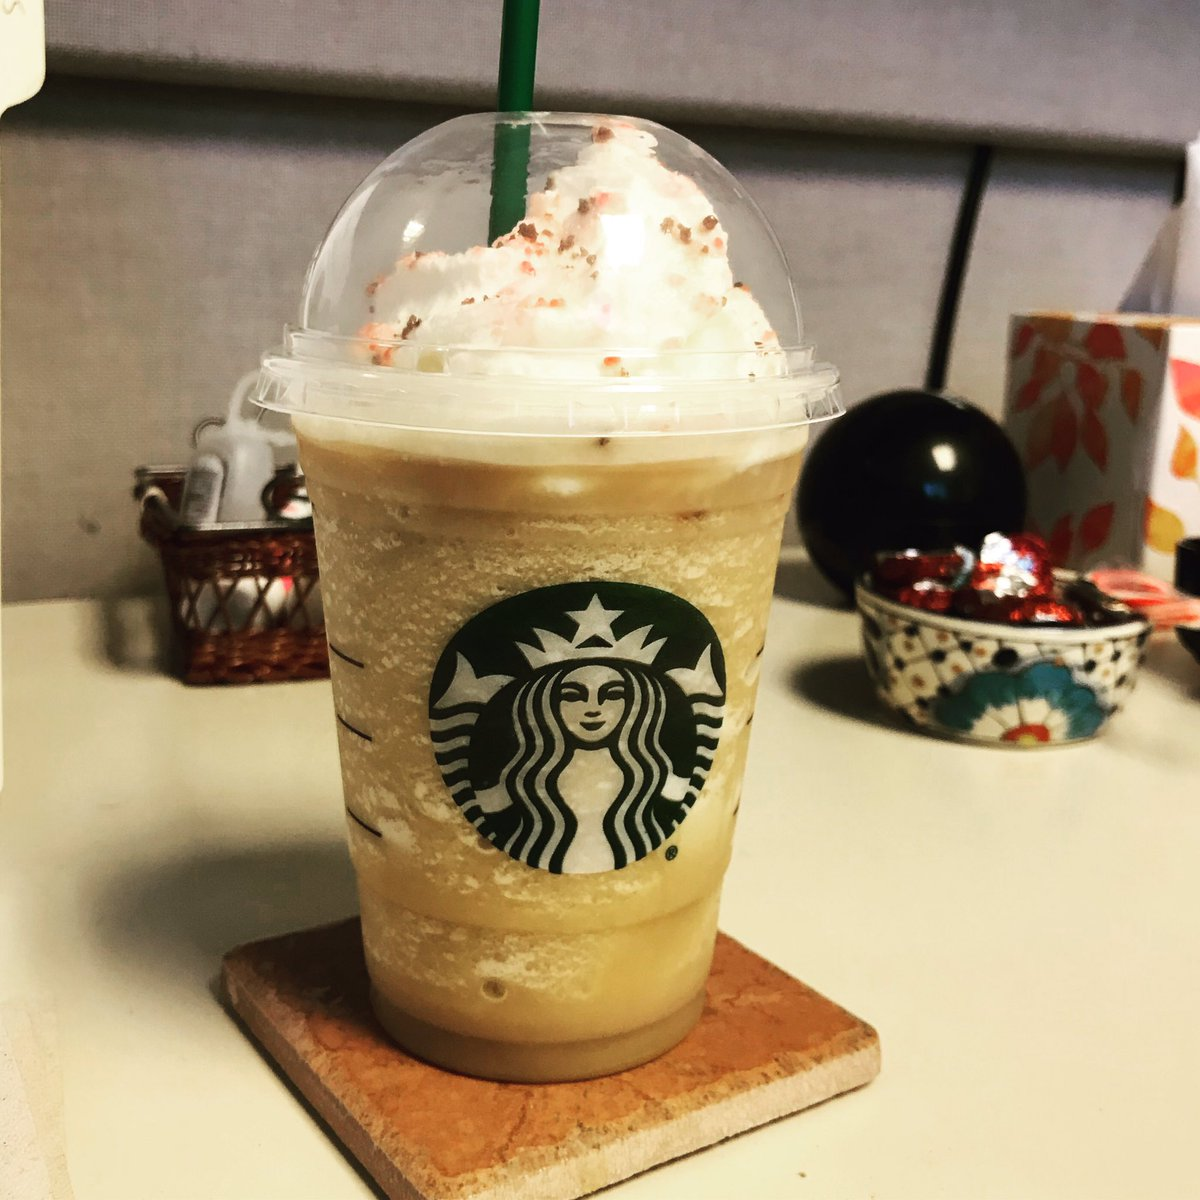 A Frappuccino for now, but later it will be some wine. #happyvalentinesday #cherrymocha #frappuccino #canthavewineatwork<br>http://pic.twitter.com/t6qmeDBrqF